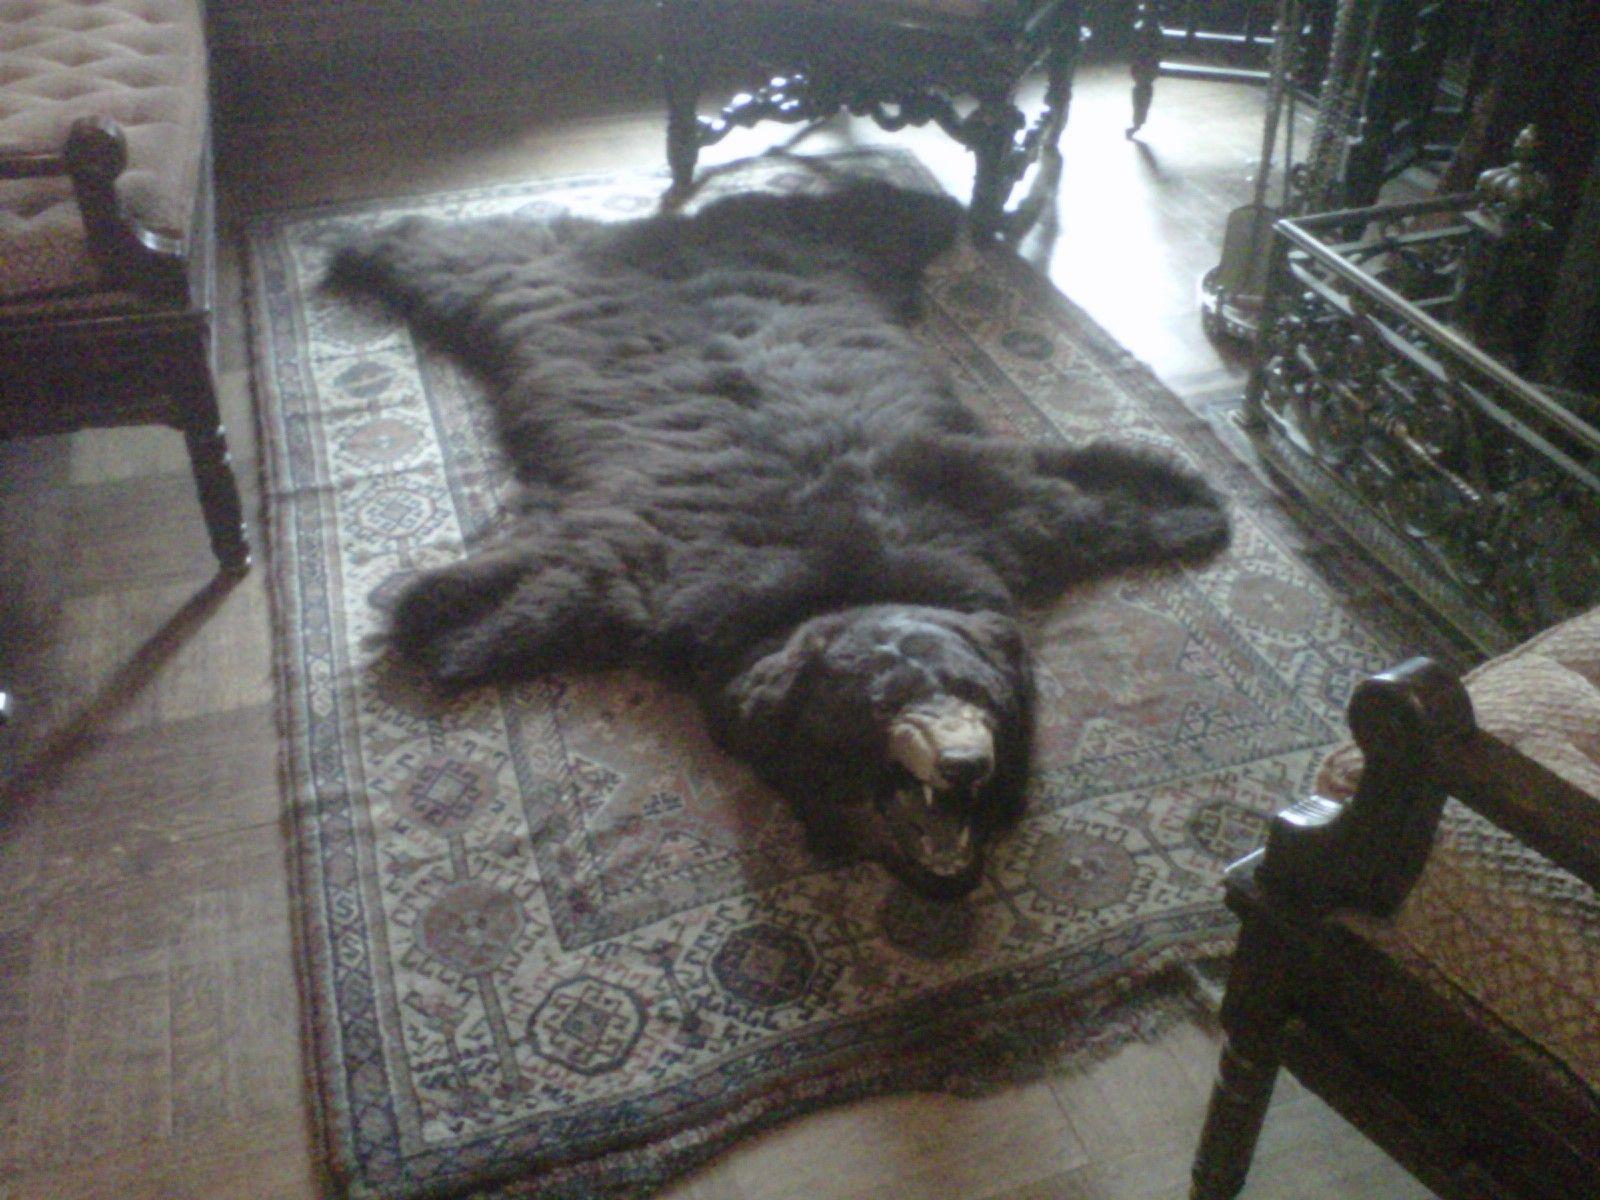 Bear skin rug on display in grand entrance area in front ...